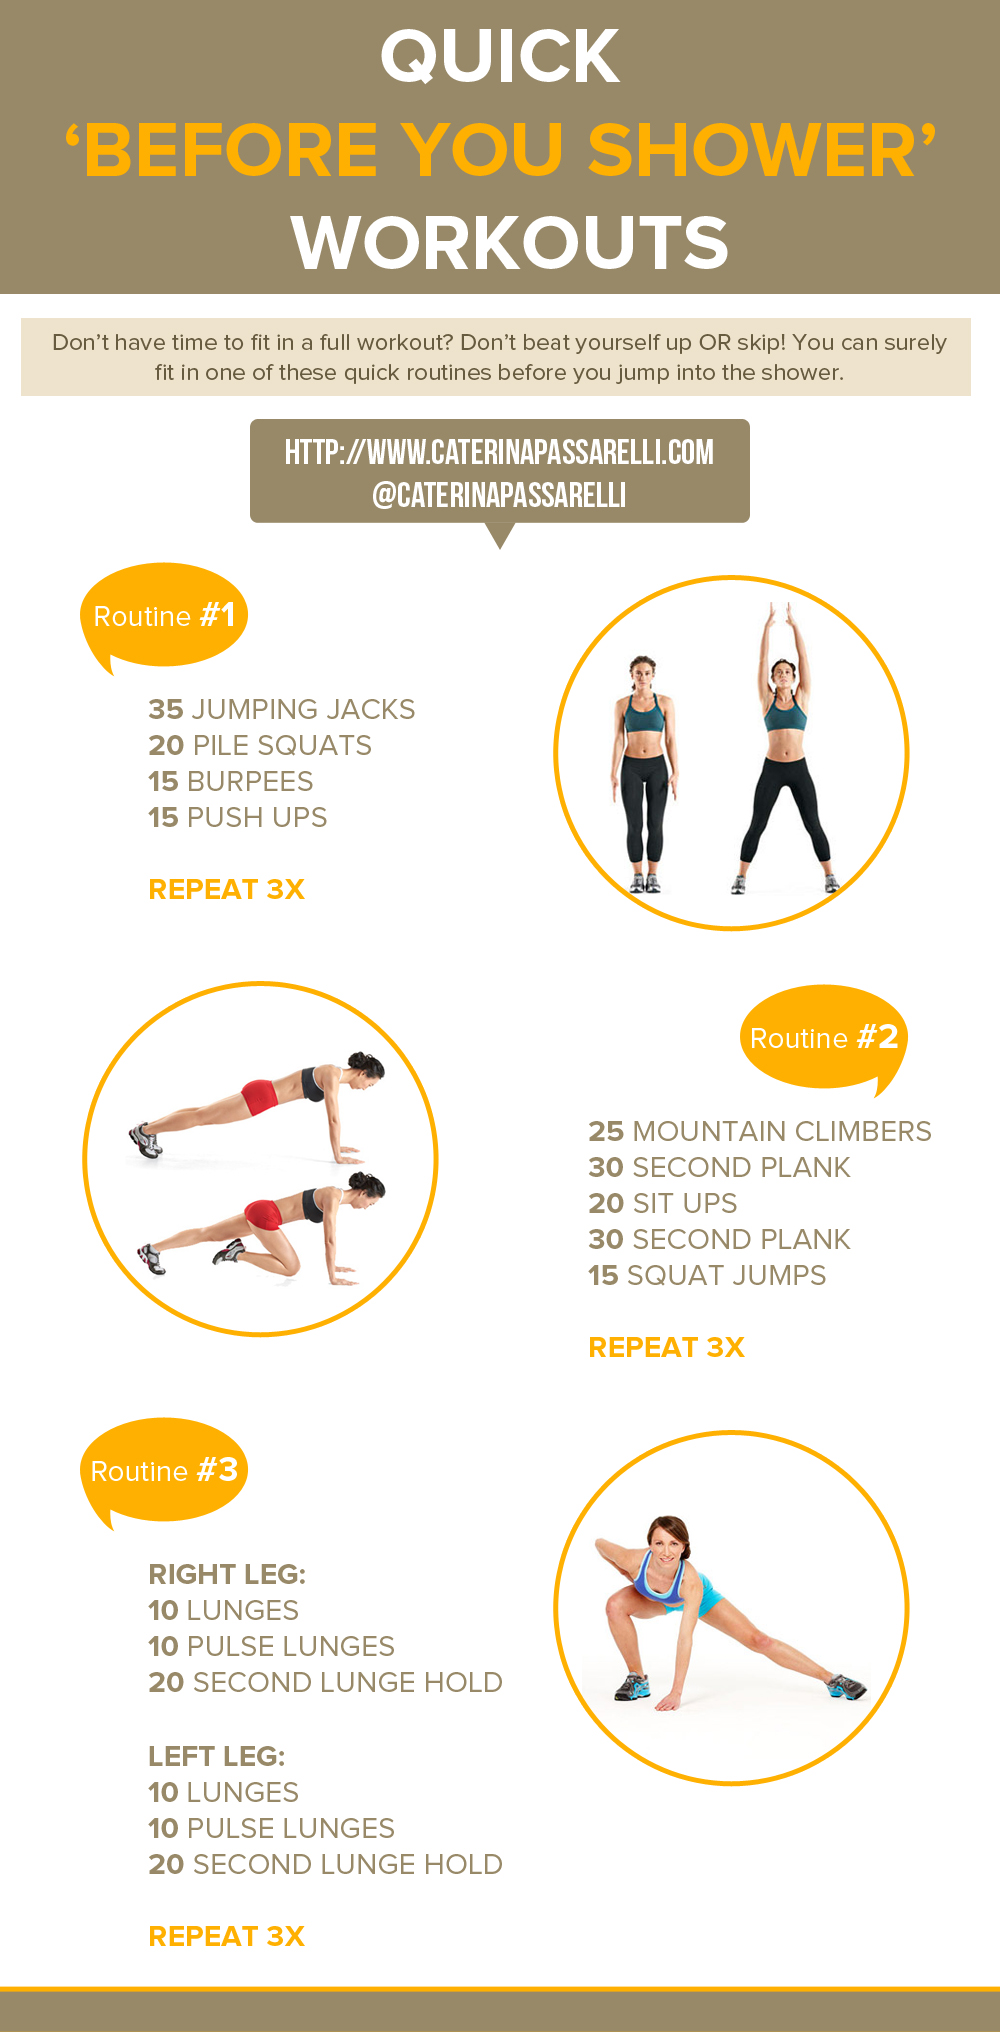 Workout Guide You Shower Workouts Guide